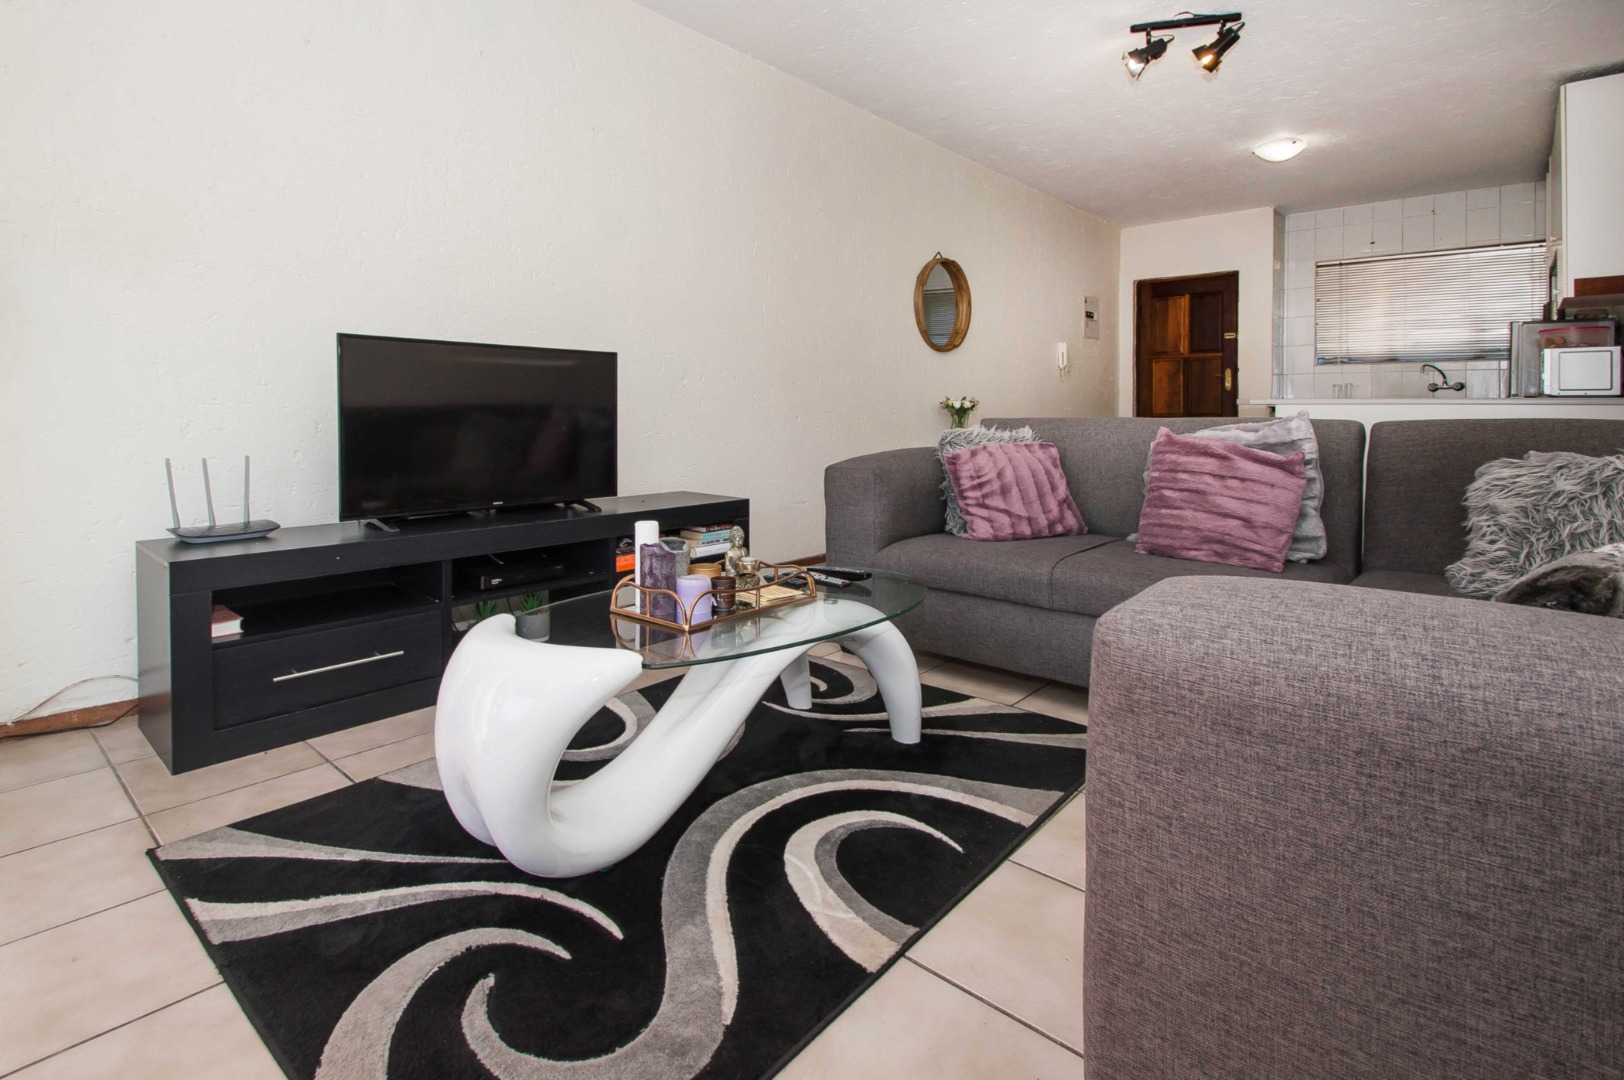 2 Bedroom Townhouse For Sale in Randpark Ridge